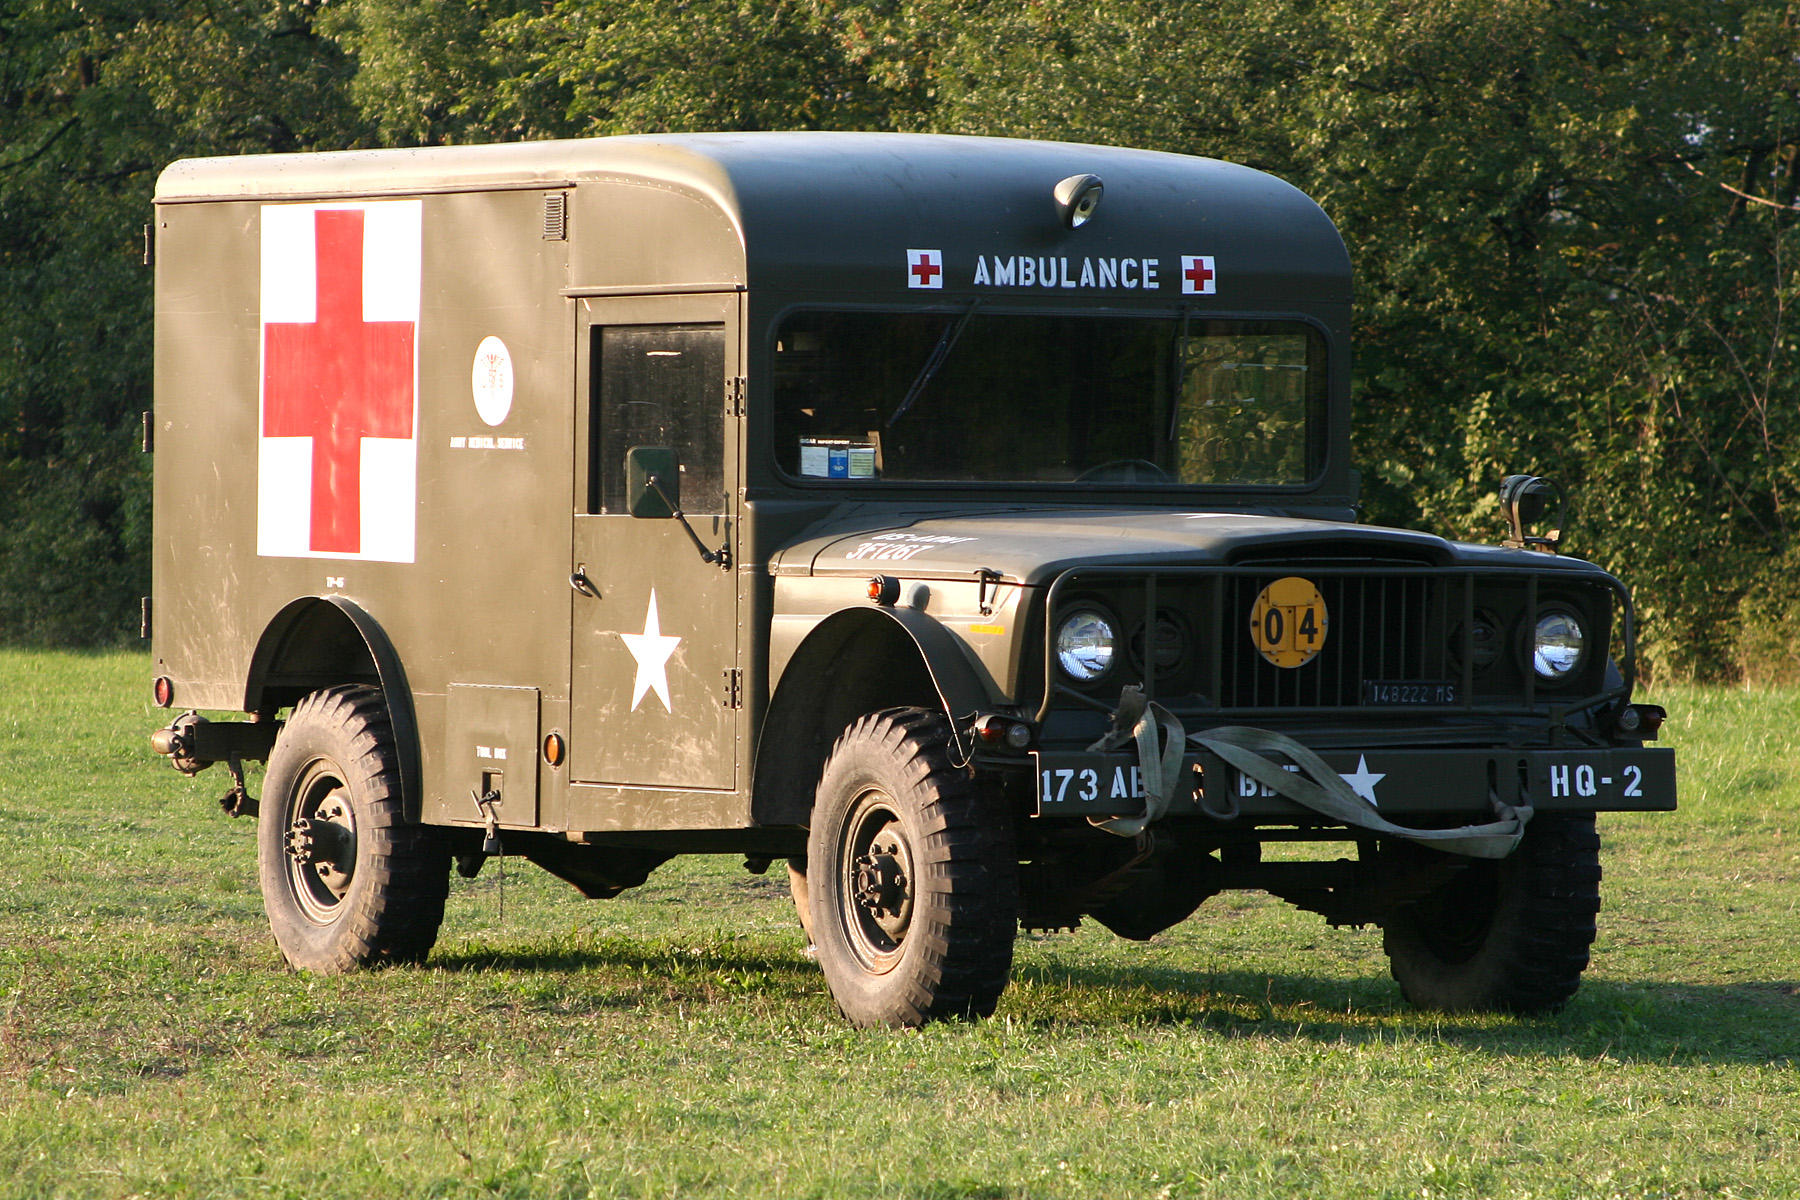 Red Dodge Avenger >> File:Jeep M725, military ambulance.jpg - Wikimedia Commons